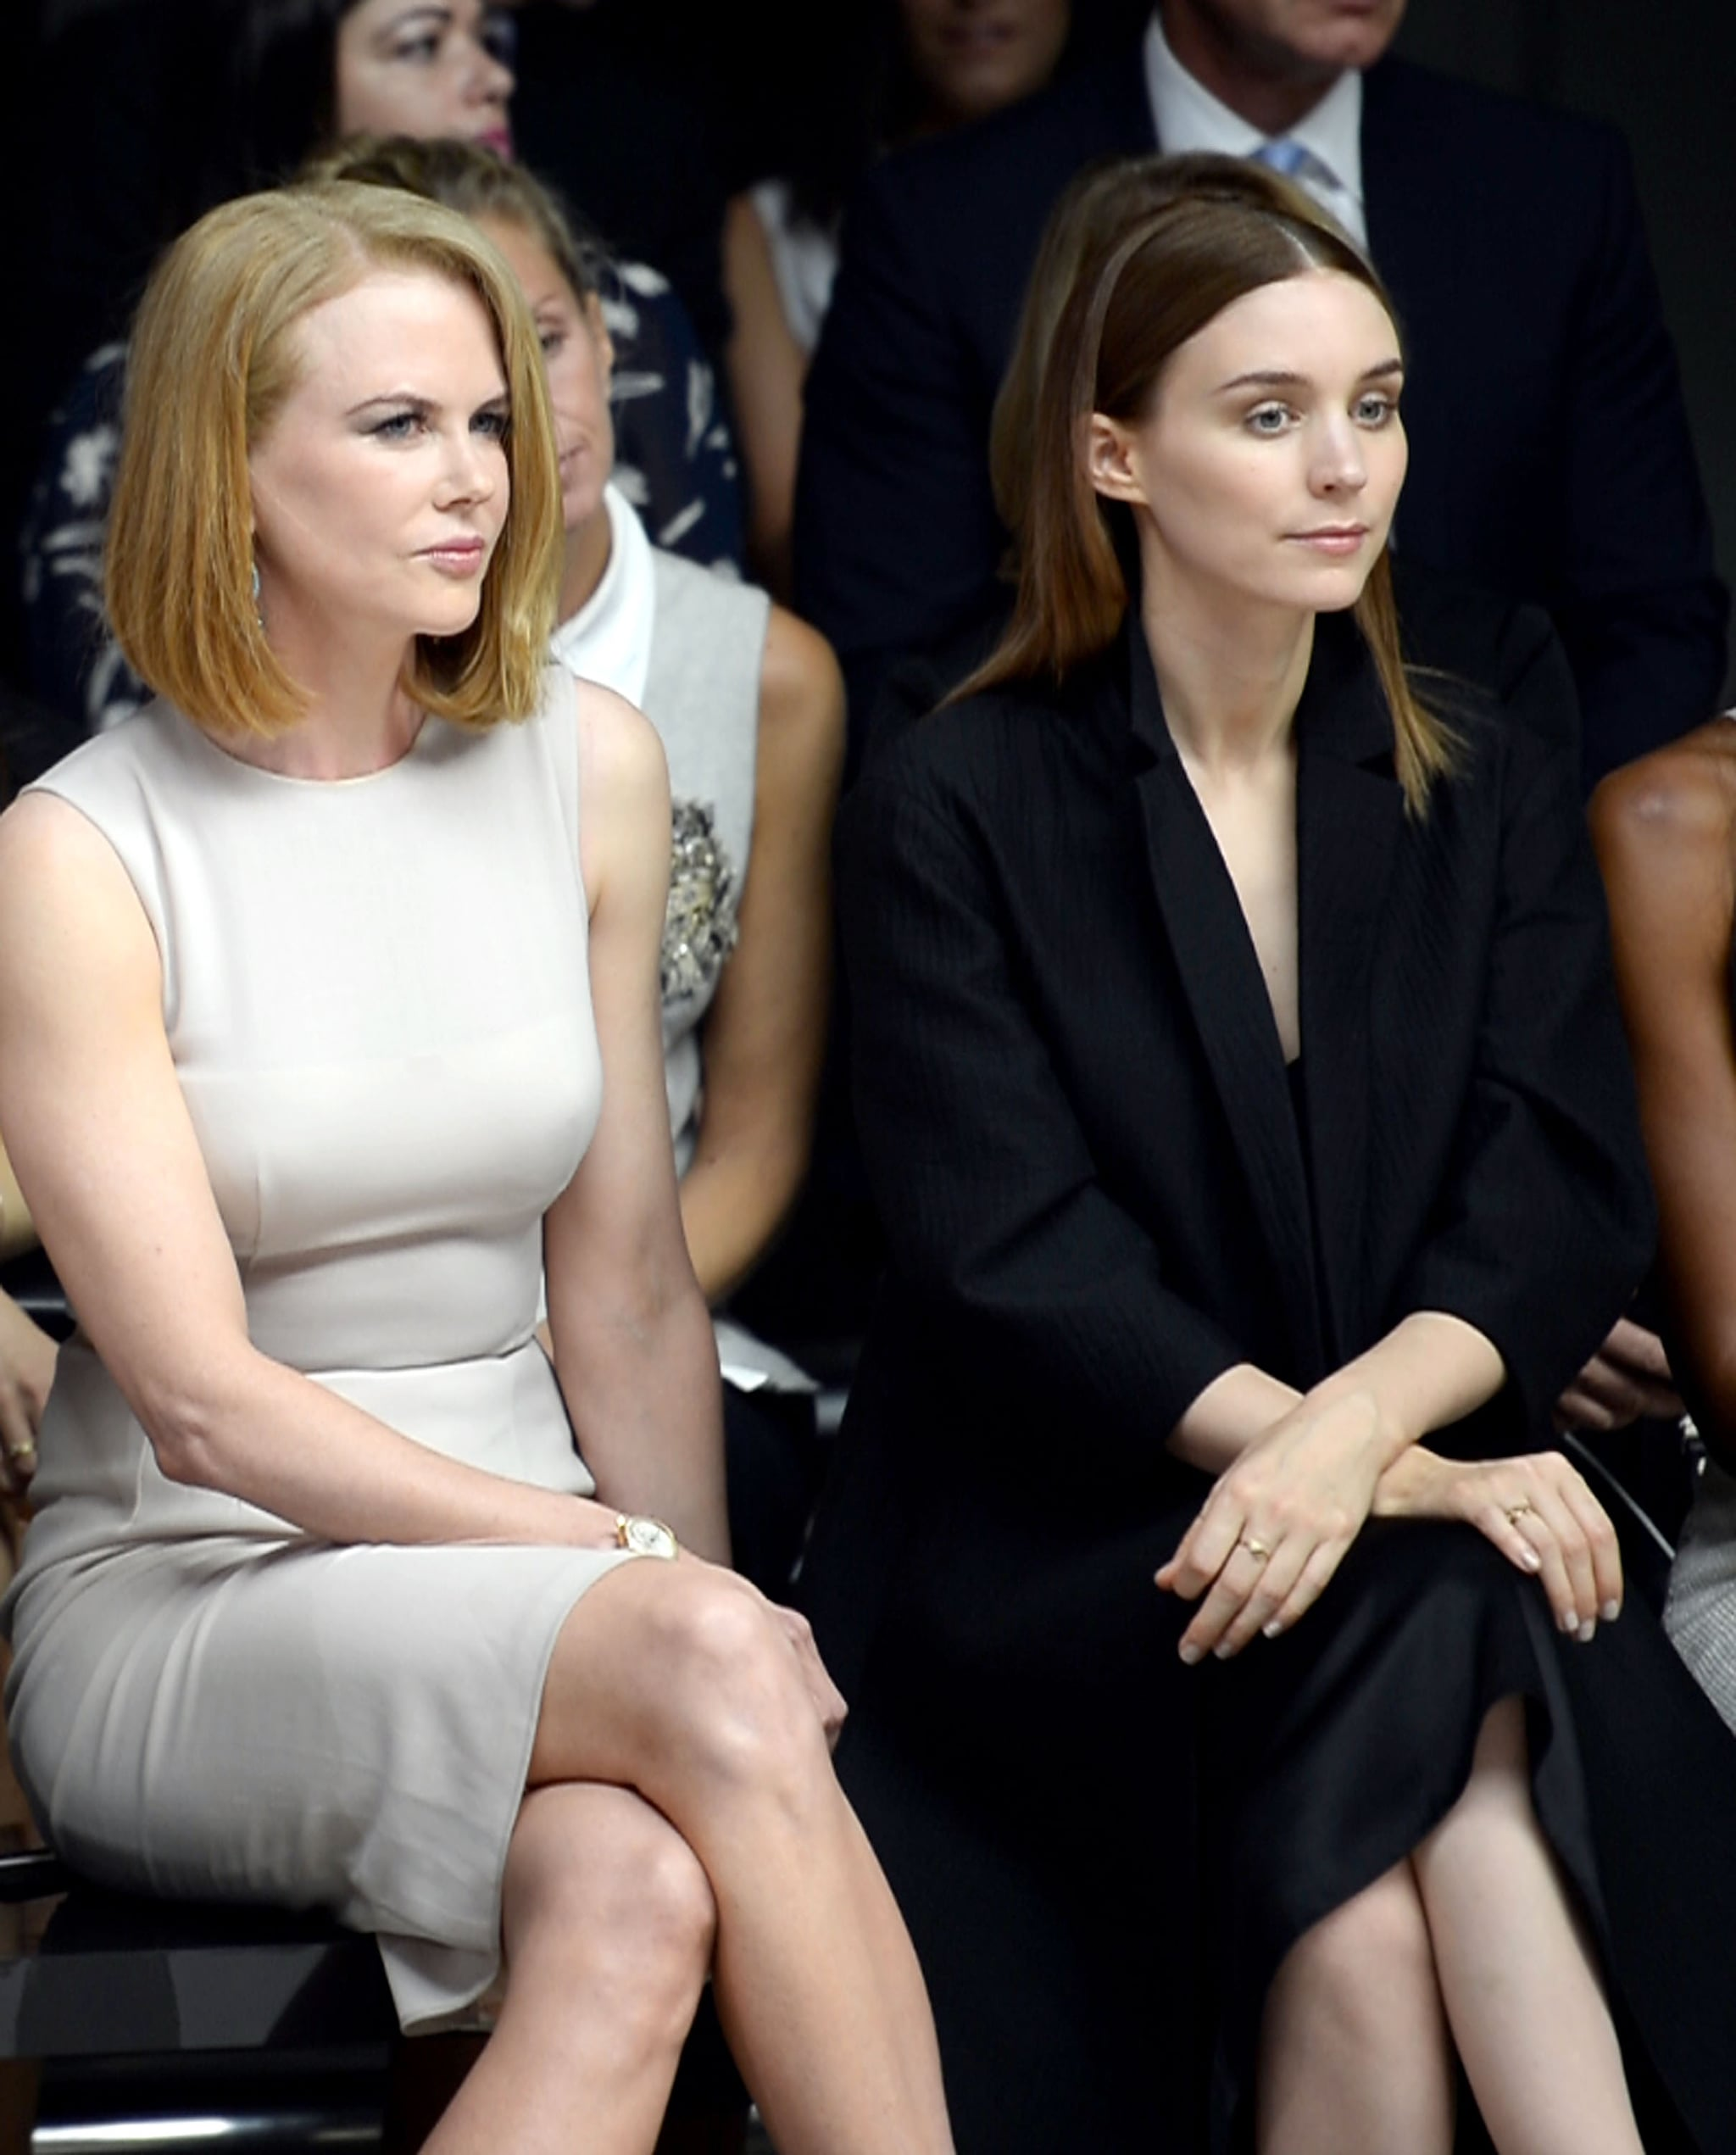 Nicole Kidman and Rooney Mara were neighbors in the front row of Thursday's Calvin Klein show.